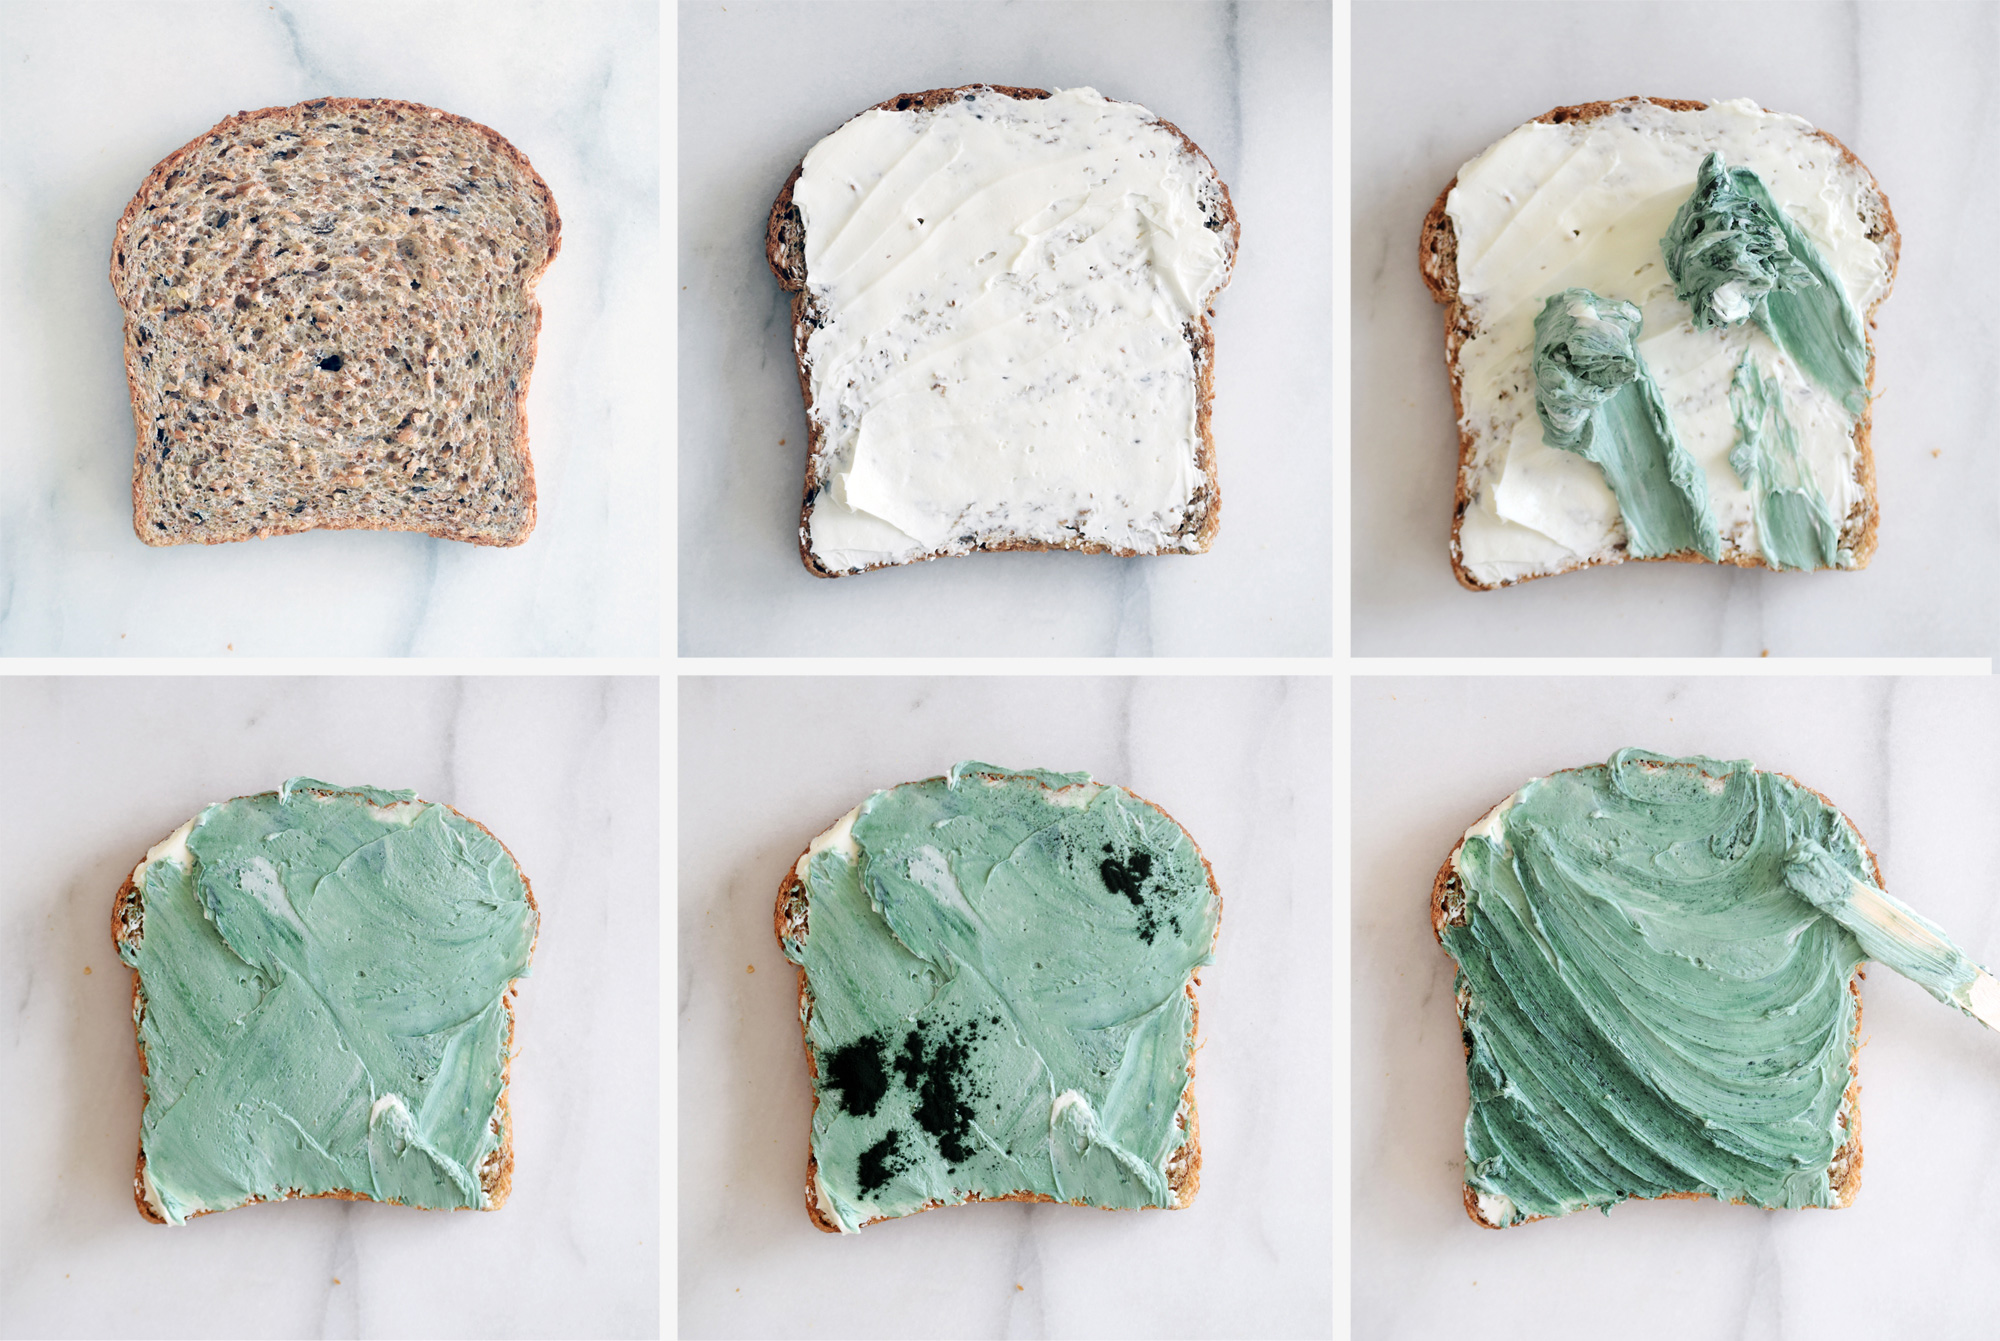 how to make mermaid toast - step by step process